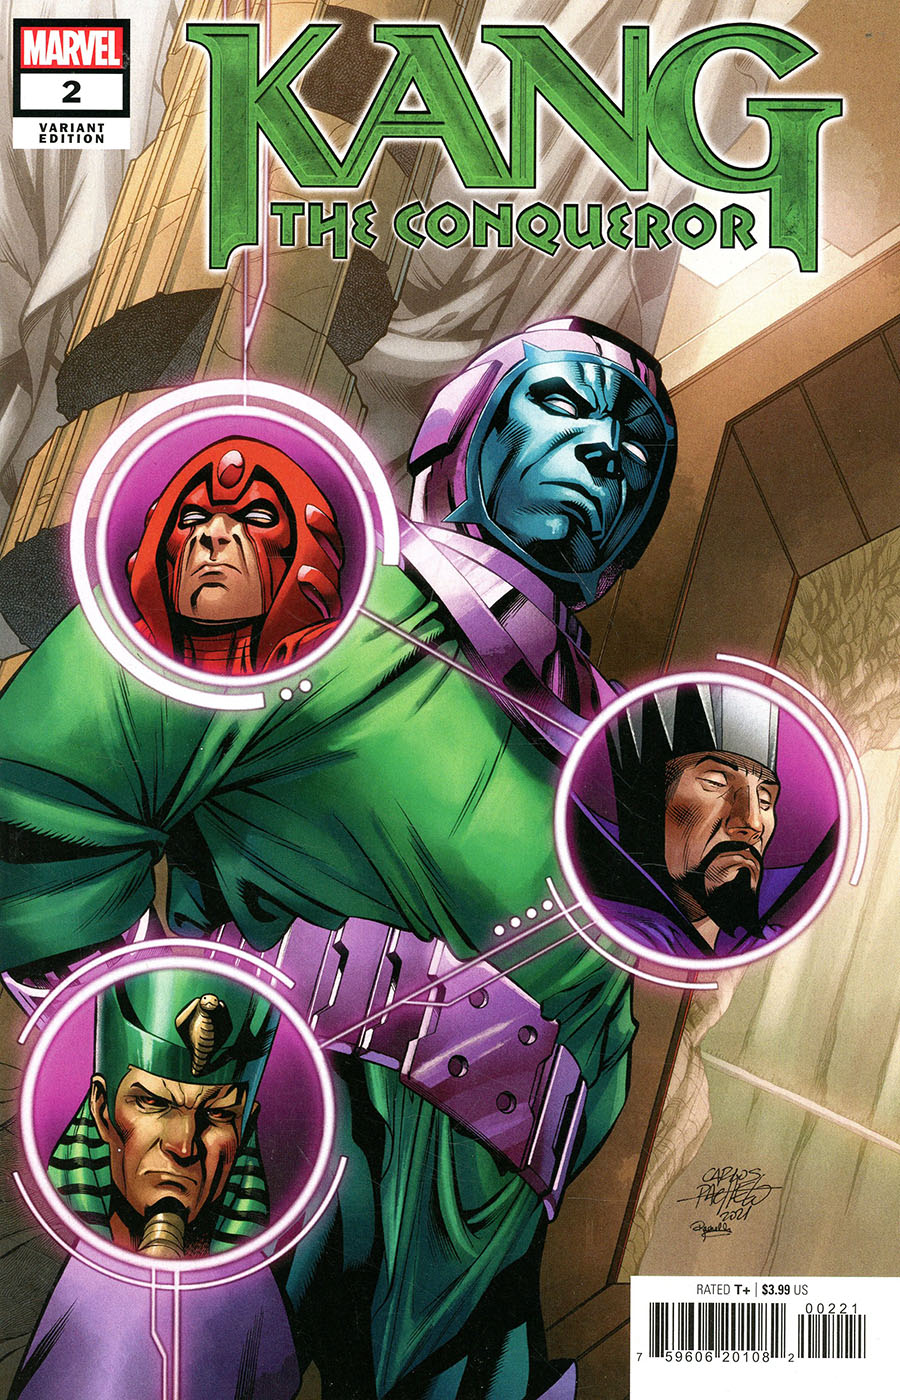 Kang The Conqueror #2 Cover B Variant Carlos Pacheco Cover